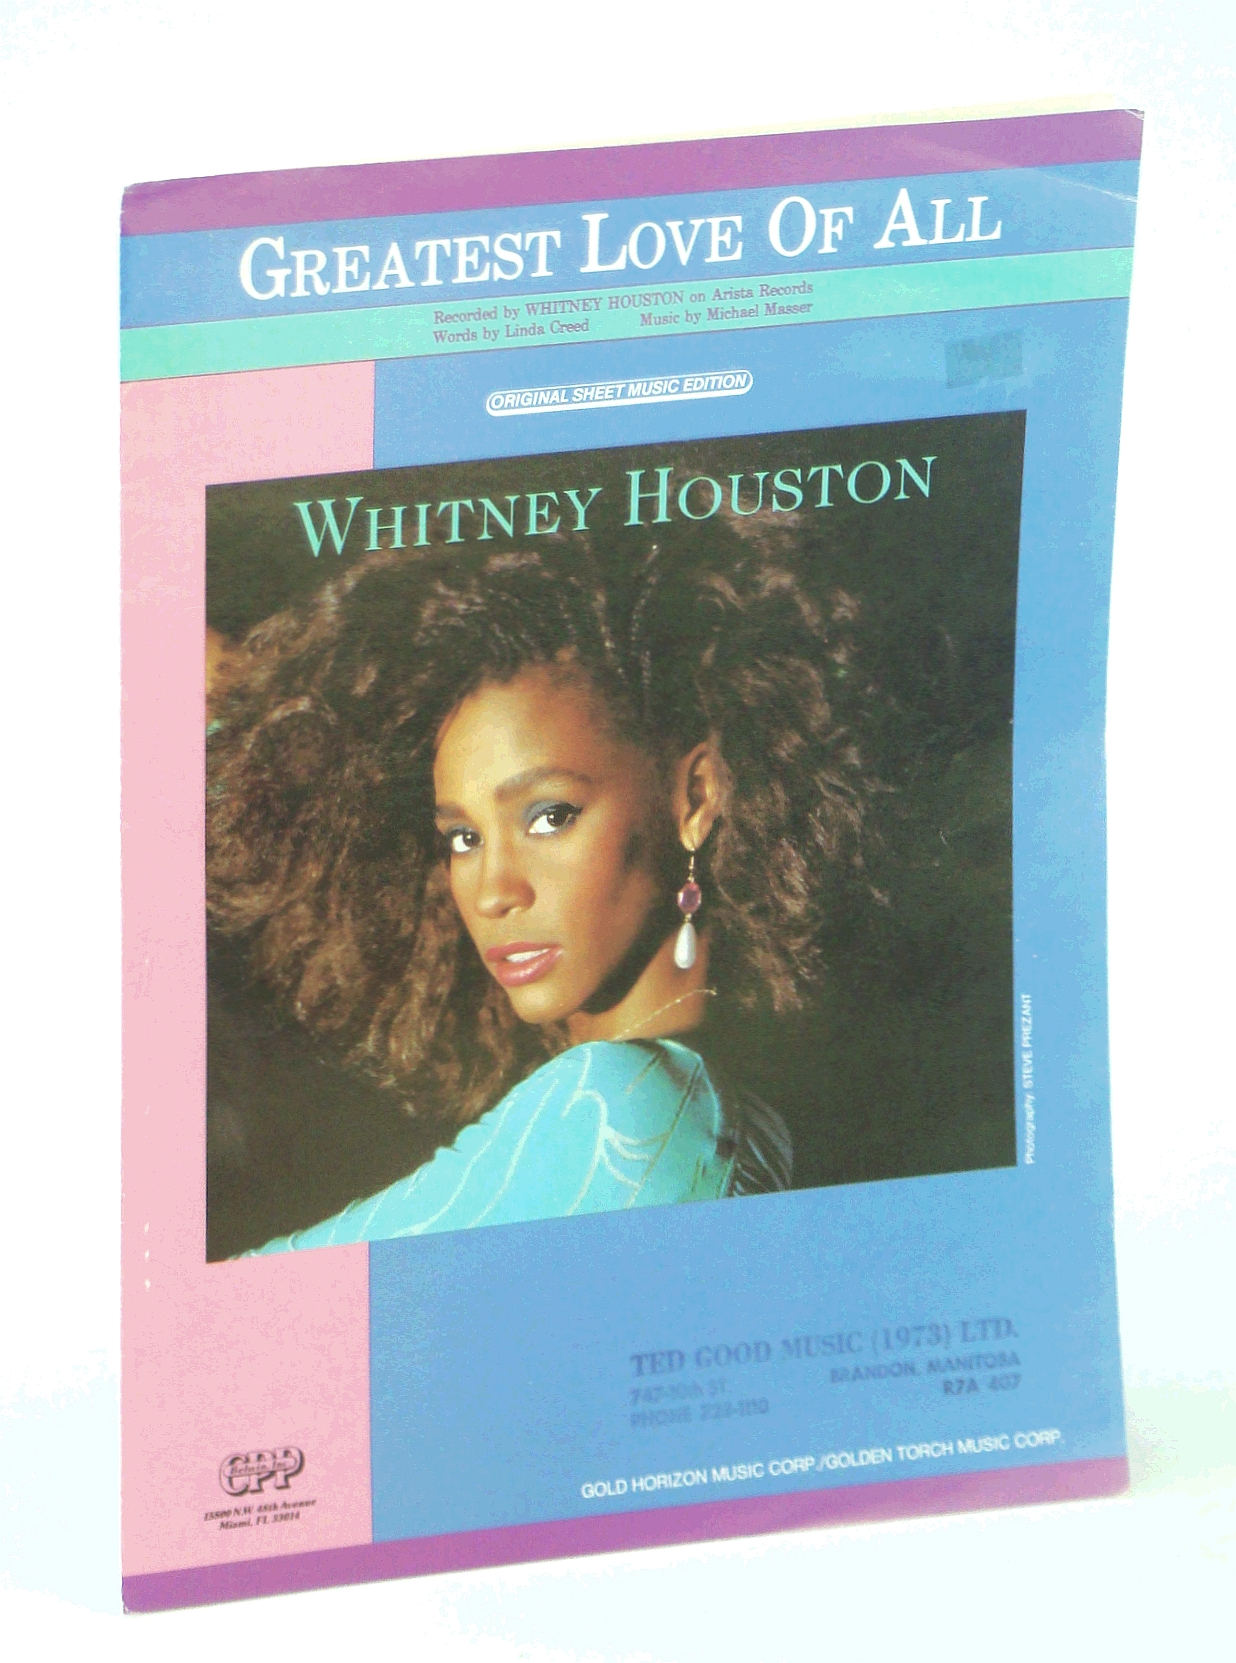 Image for Greatest Love Of All [Sheet Music, Whitney Houston Cover]